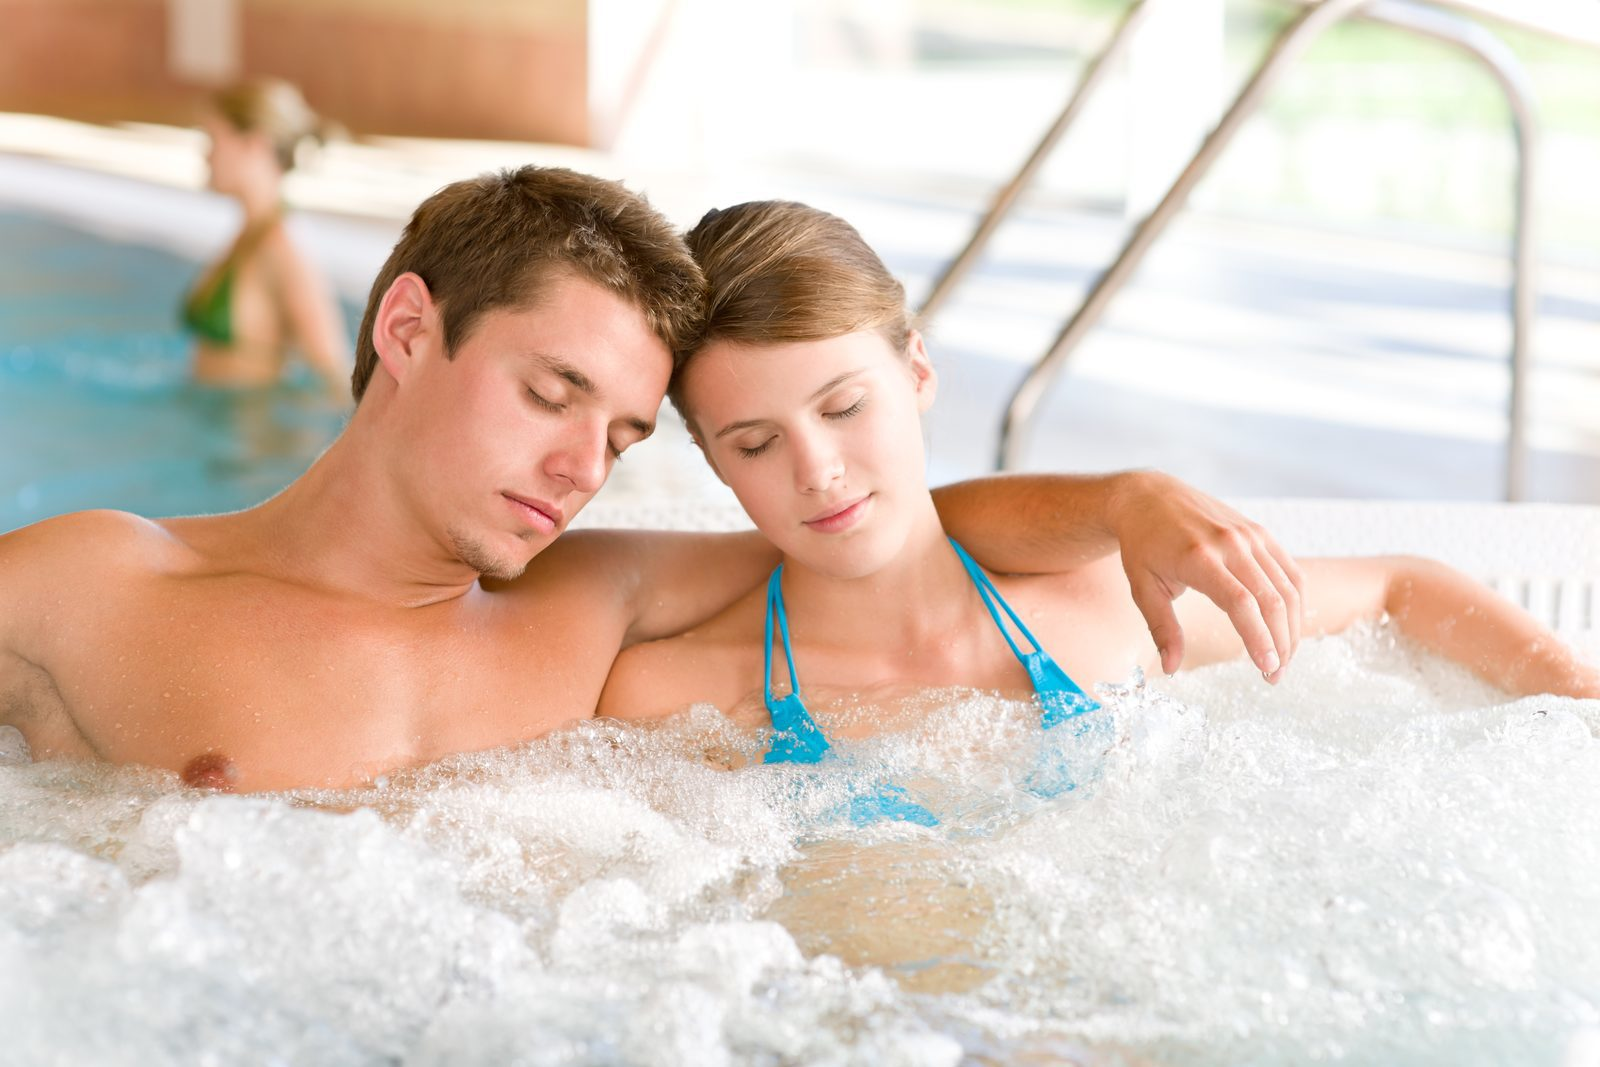 A wellness oasis with thermal waters, spas, massages and saunas. Enjoy from unique Swiss wellness from your cottage on Resort Walensee.